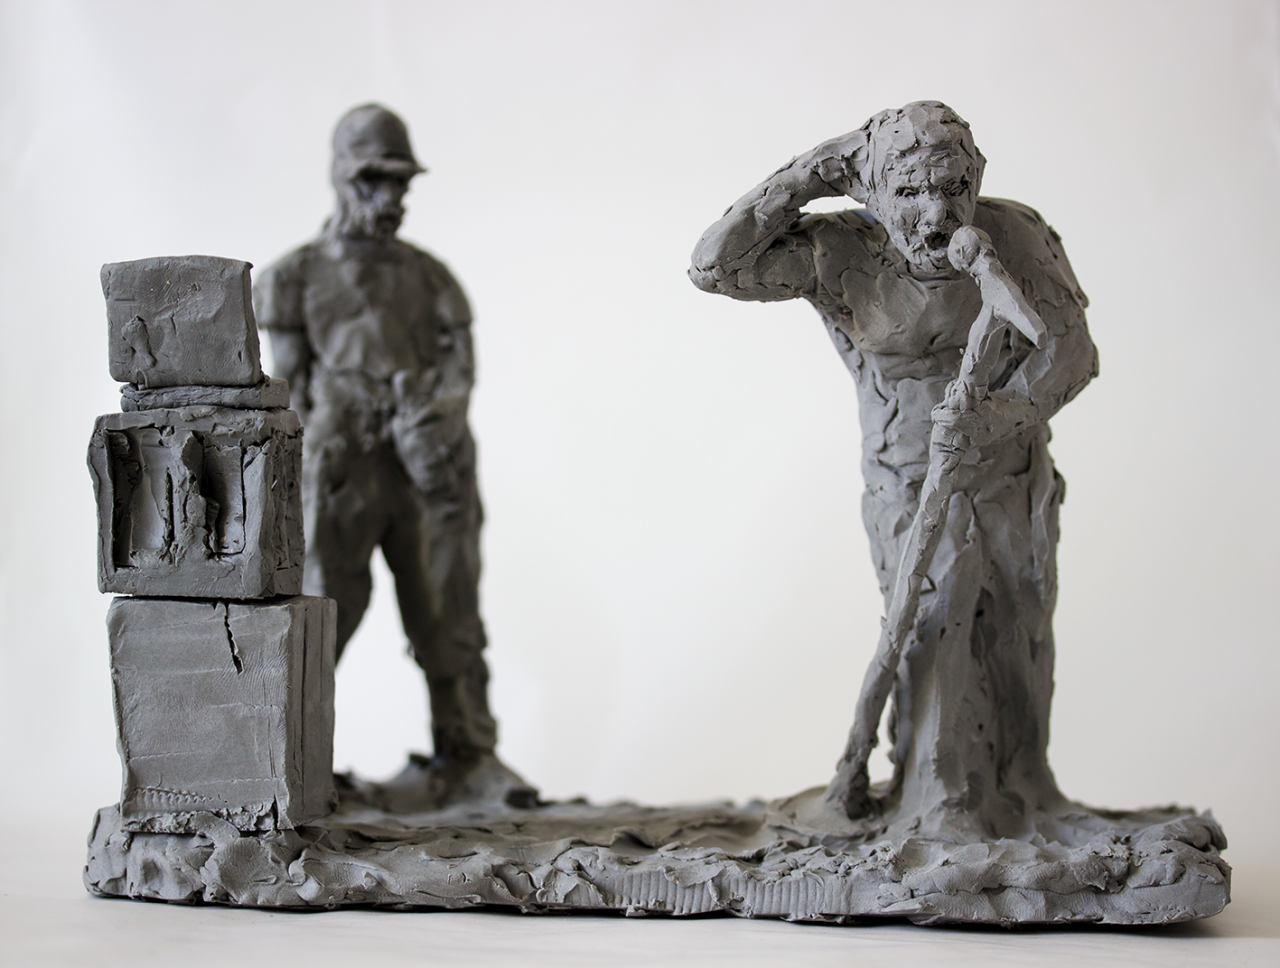 Sleaford Mods 2020 – 19 x 17 x 25cm, plasticine original for future casts